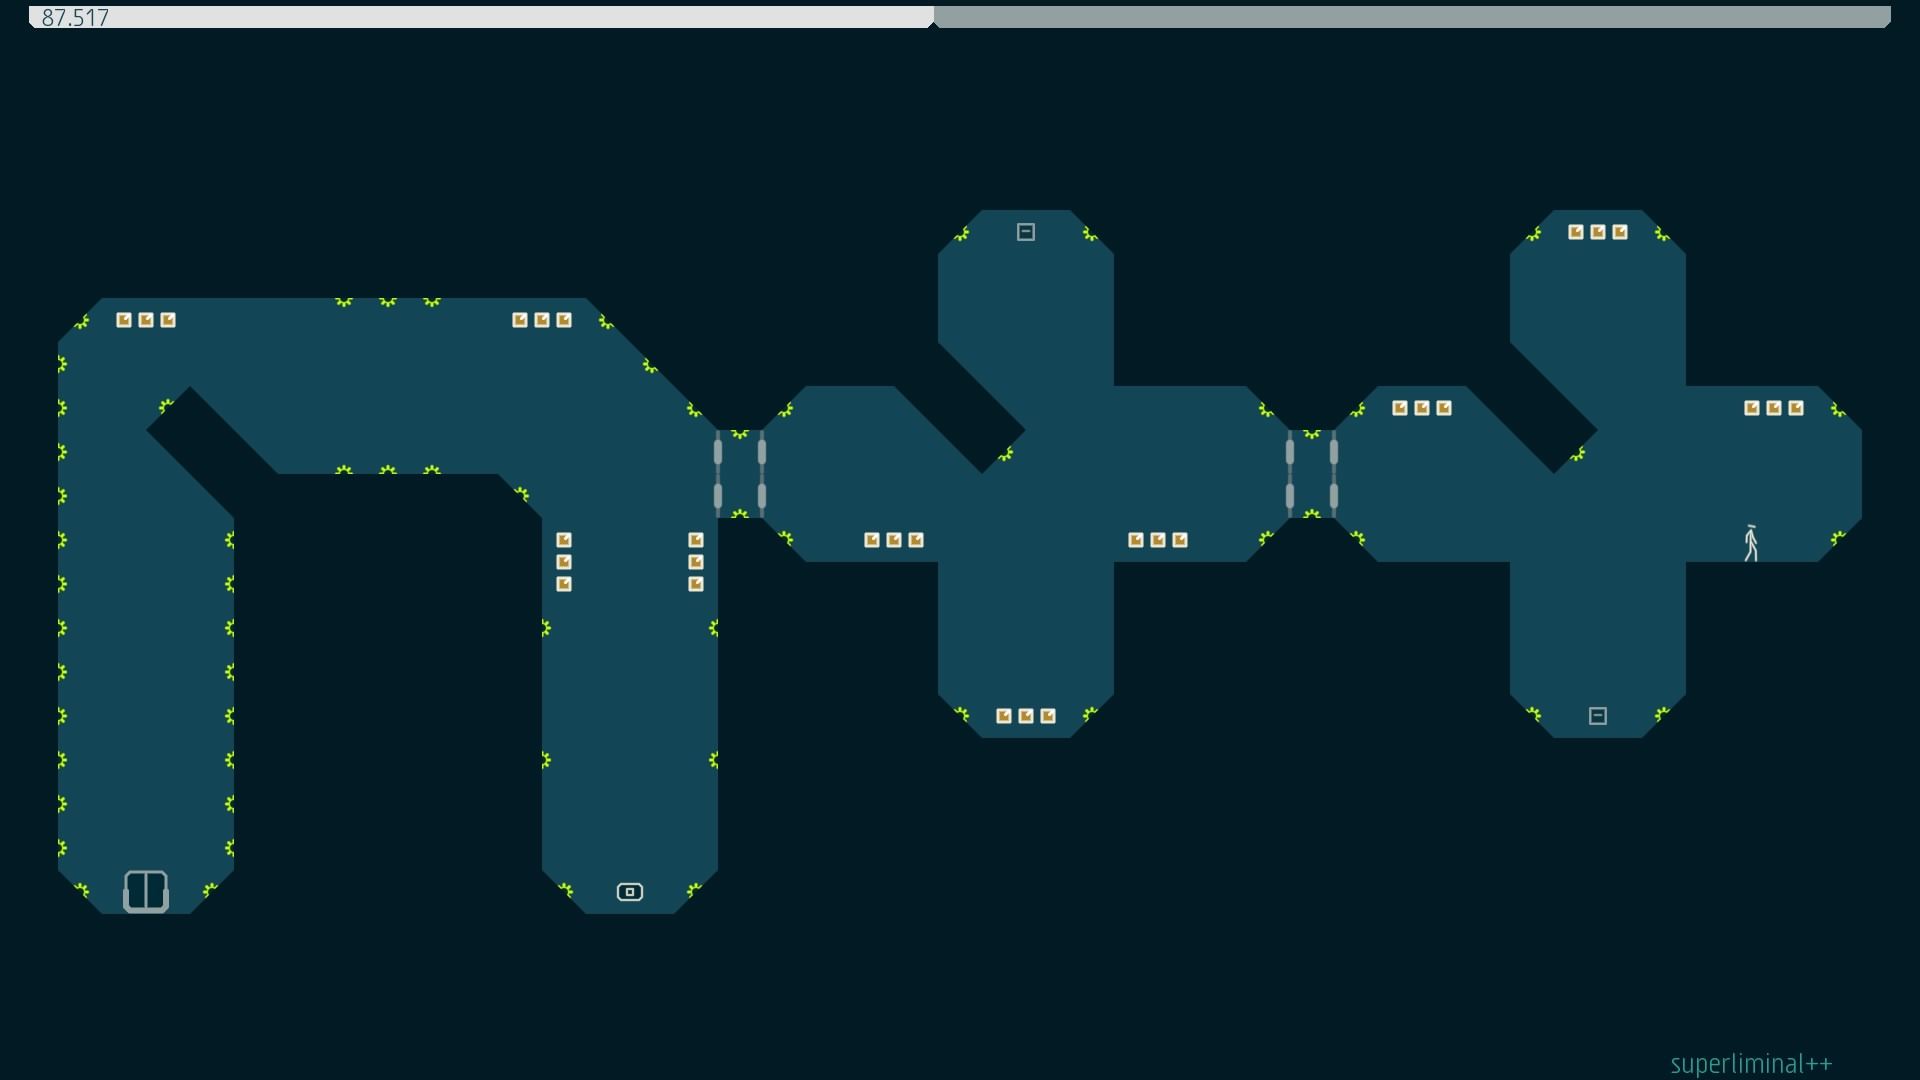 N++ is coming to Switch after all screenshot